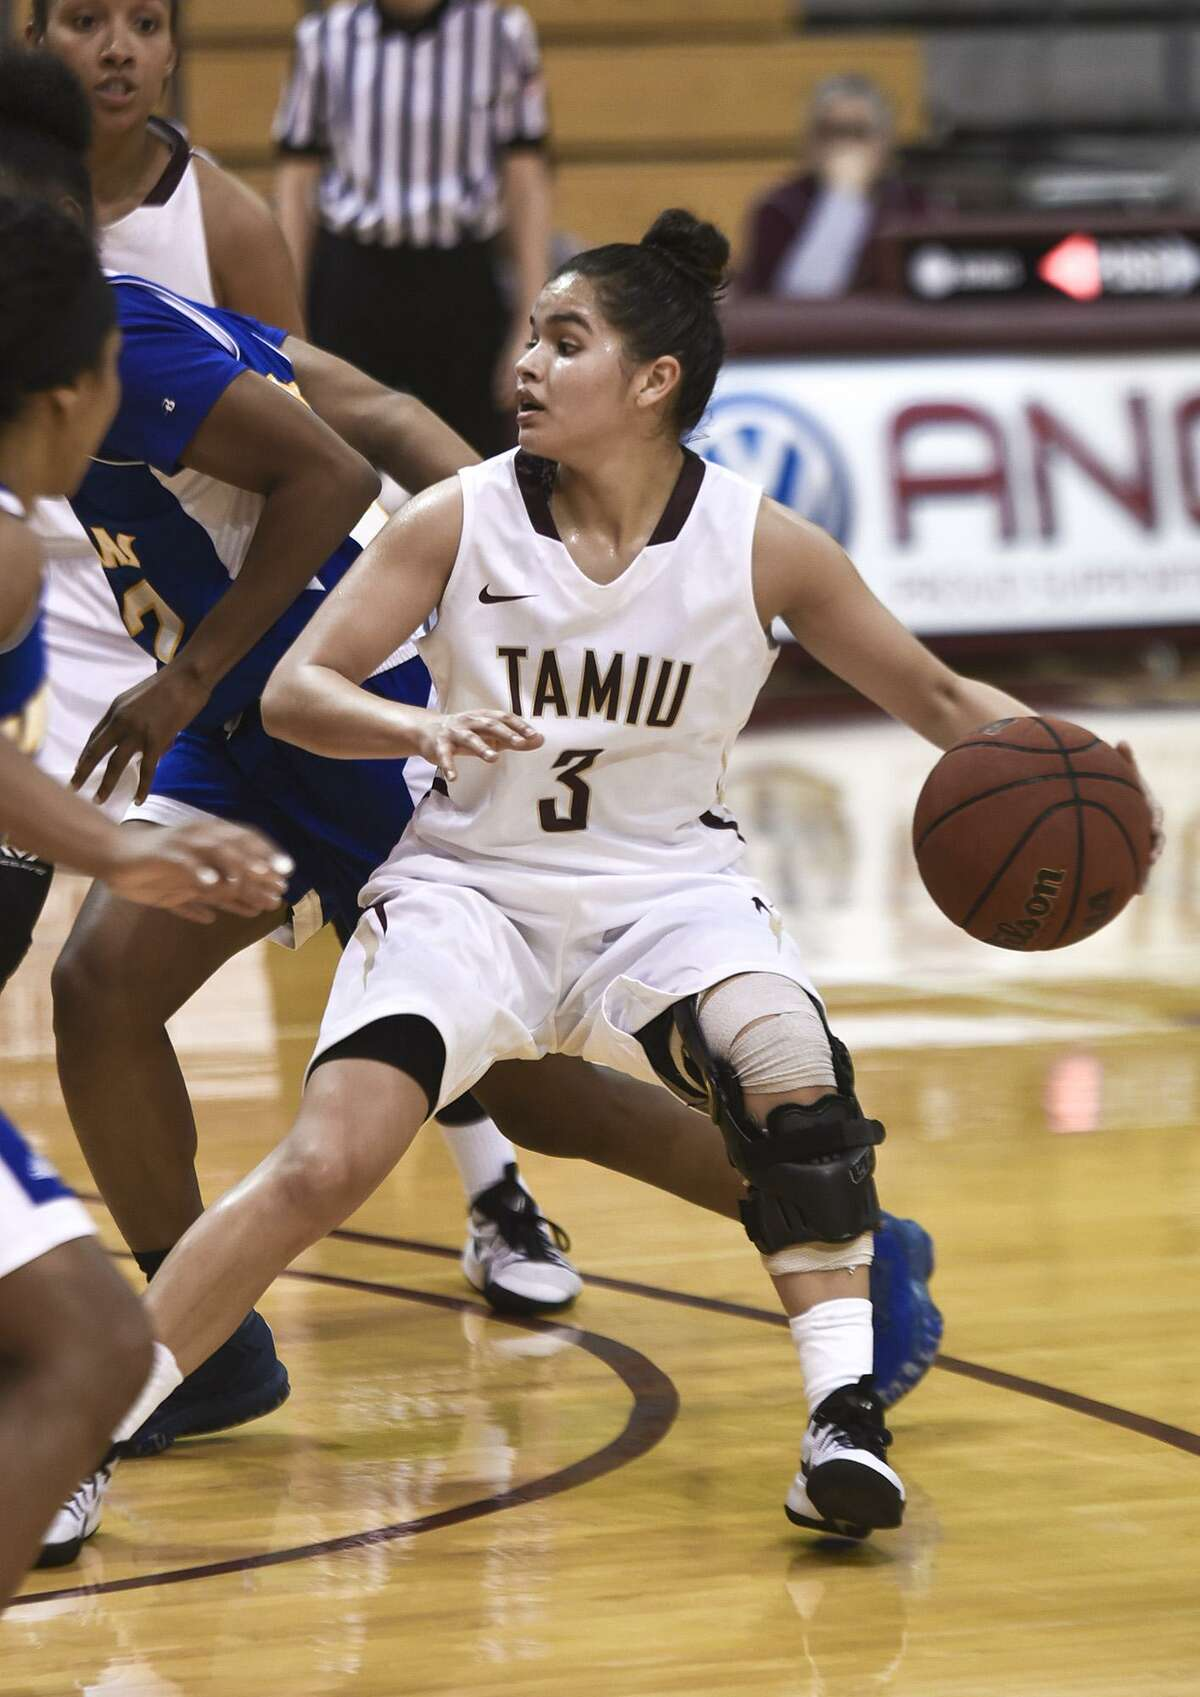 TAMIU point guard Joanna Perez had a career-high 22 points and five assists in the Dustdevils' 85-55 loss to Texas A&M-Kingsville Saturday night.